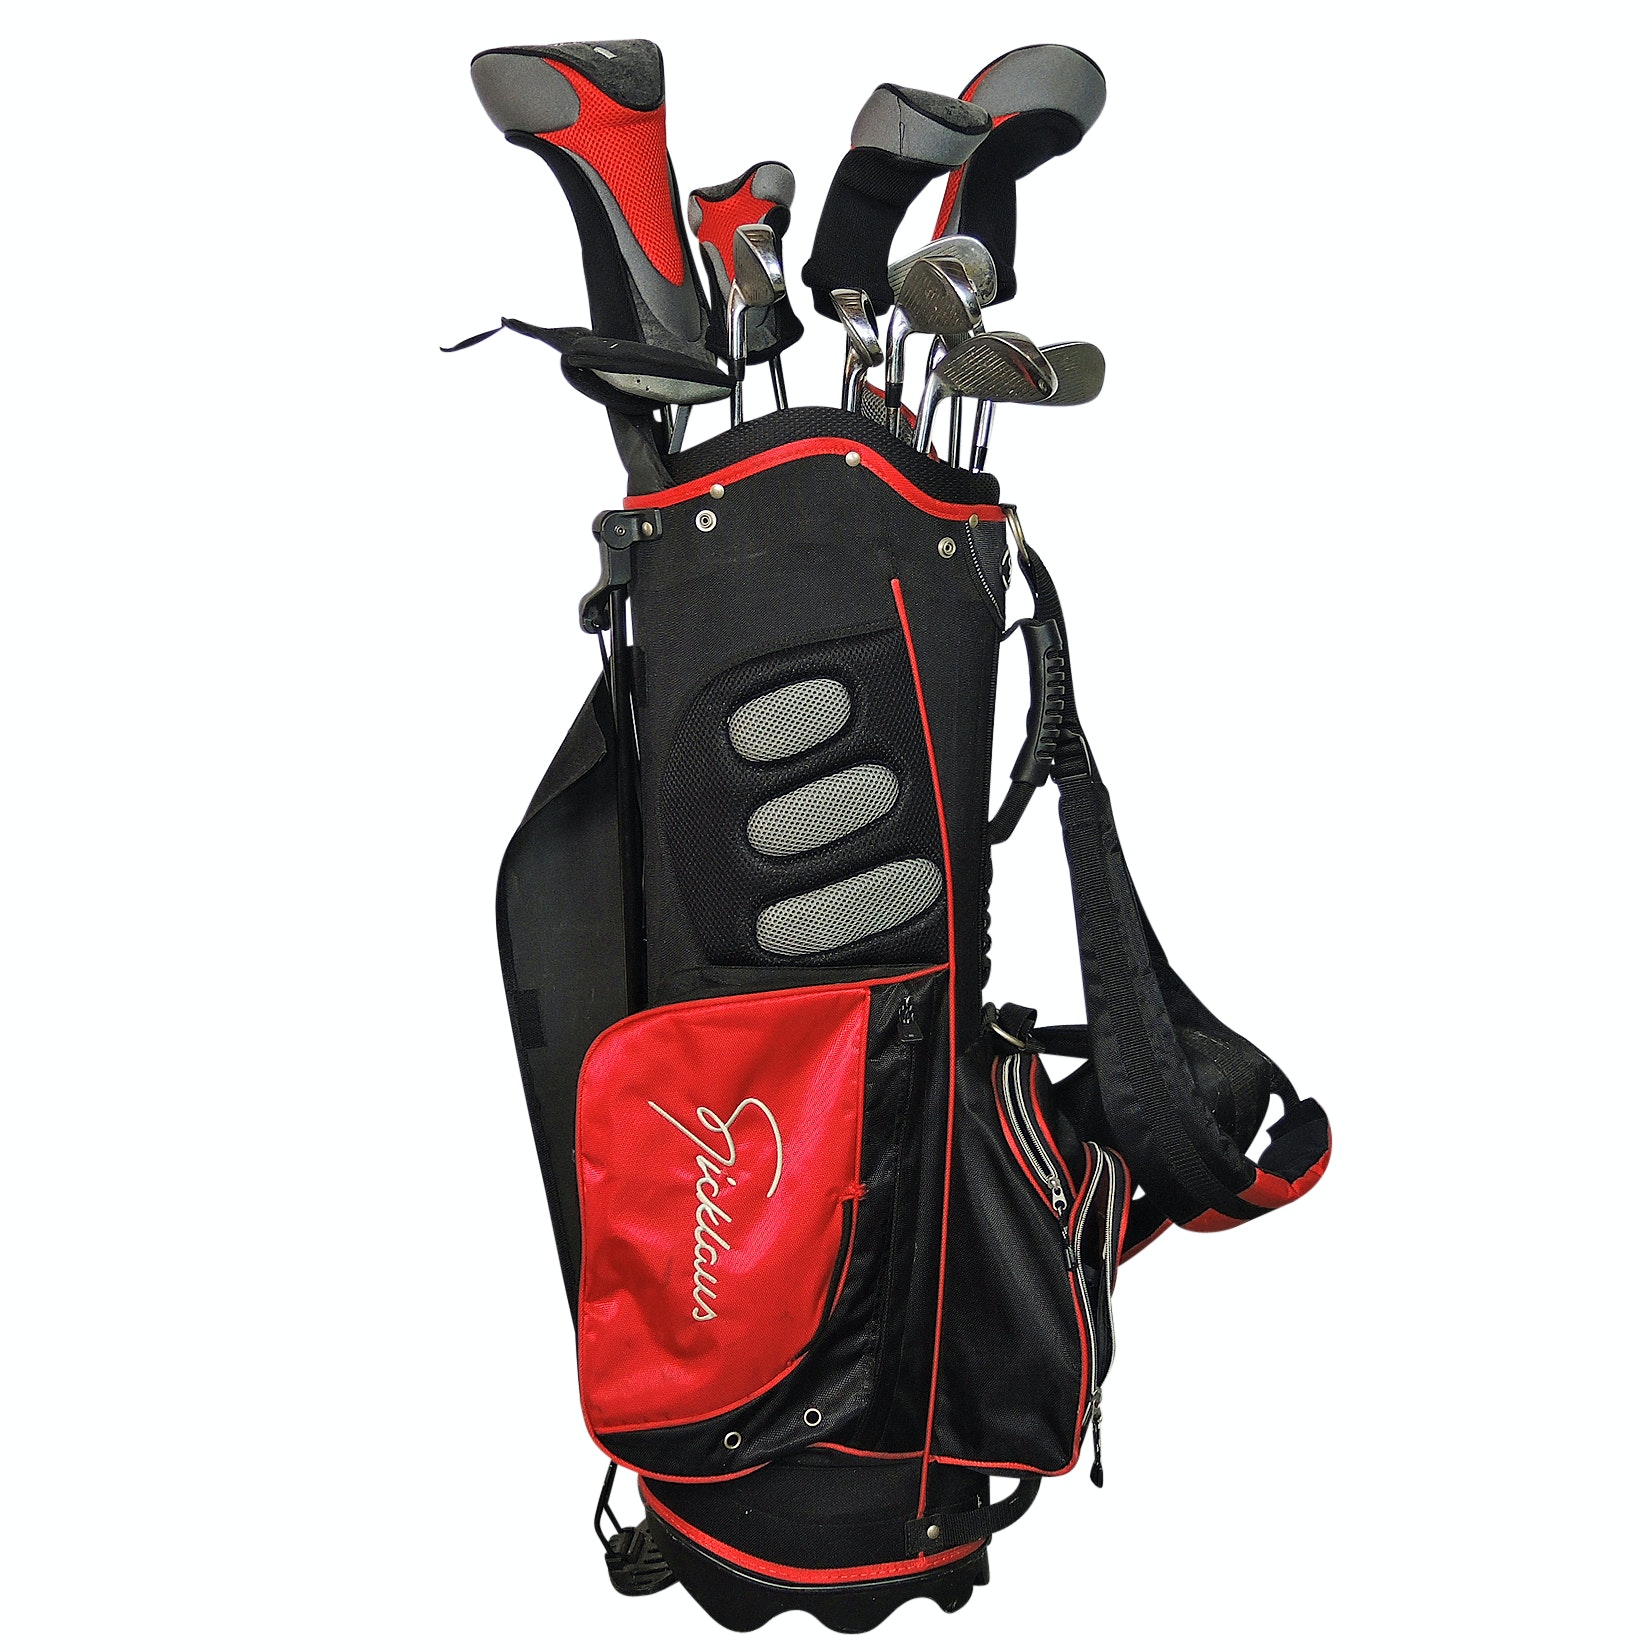 Nicklaus Signature Series Golf Club Set with Bag